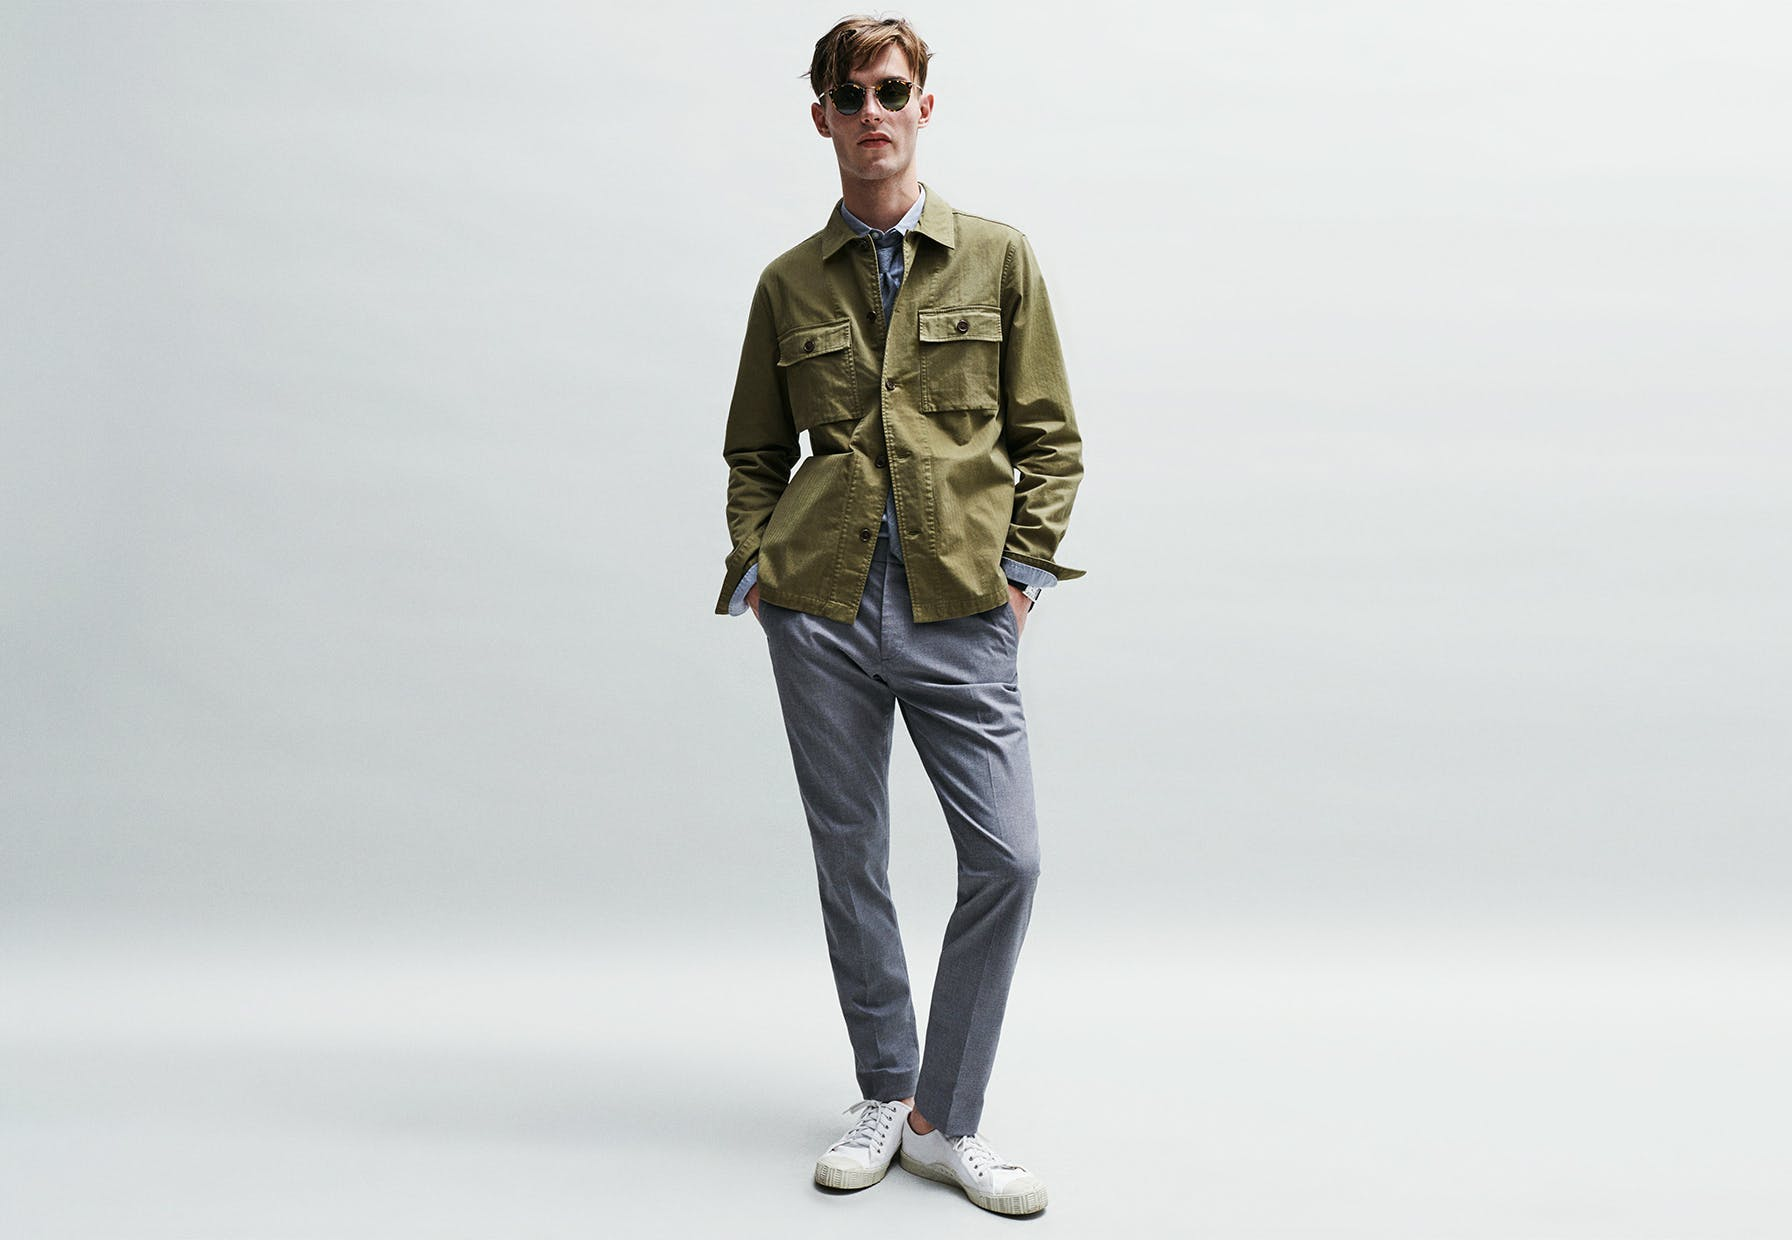 Reverse the typical blazer and jeans equation by wearing dress pants with a casual jacket. It's dressed up but not as formal, and you'll definitely rock fewer elbow patches.